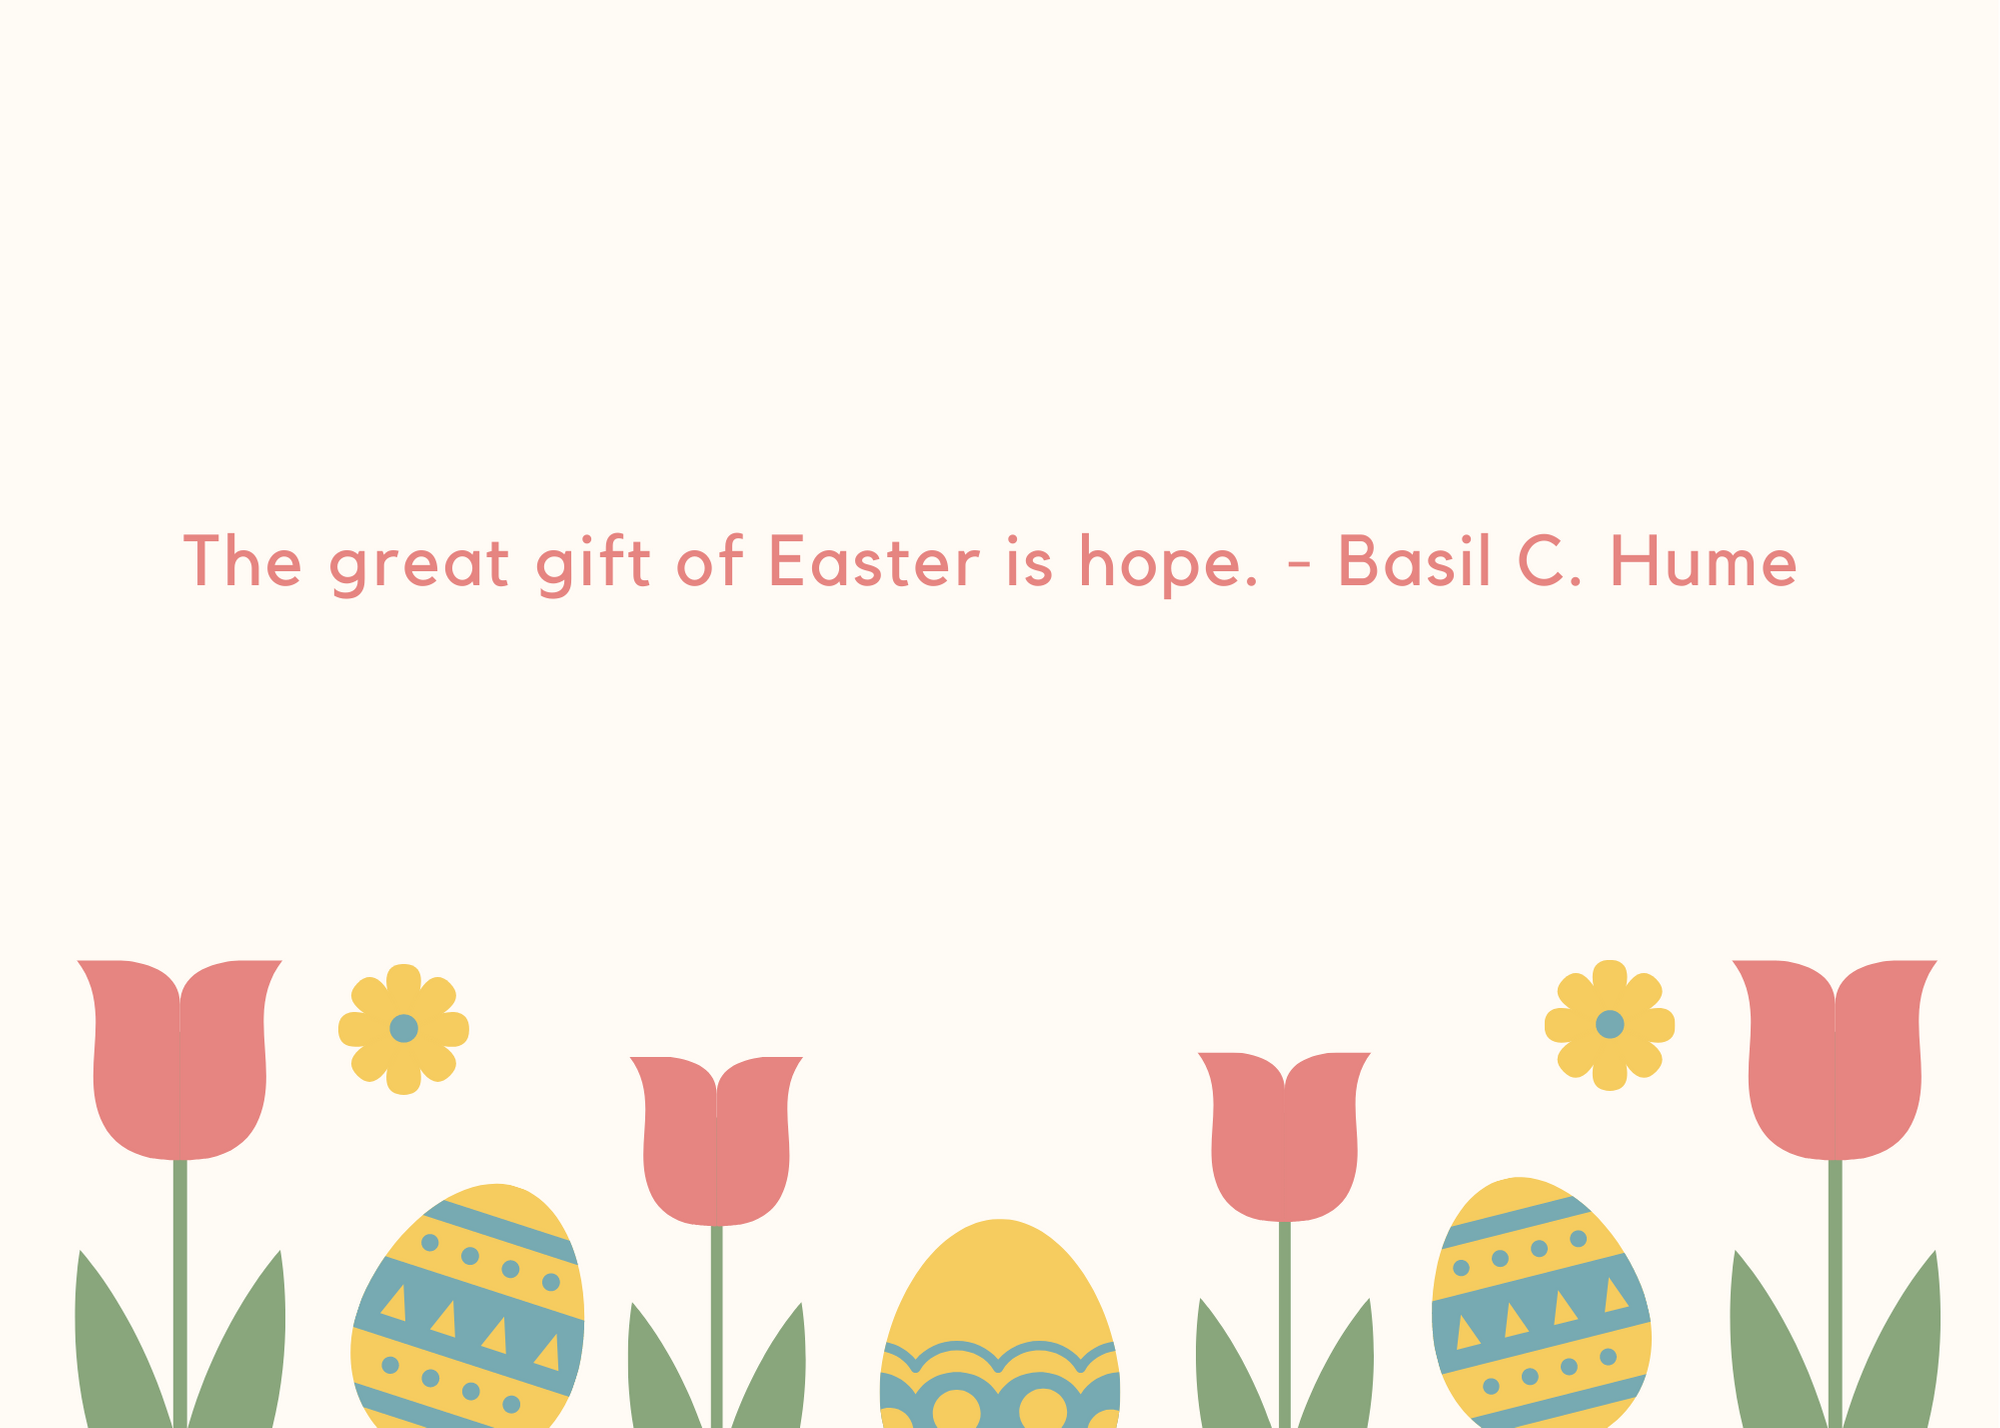 The great gift of Easter is hope. - Basil C. Hume